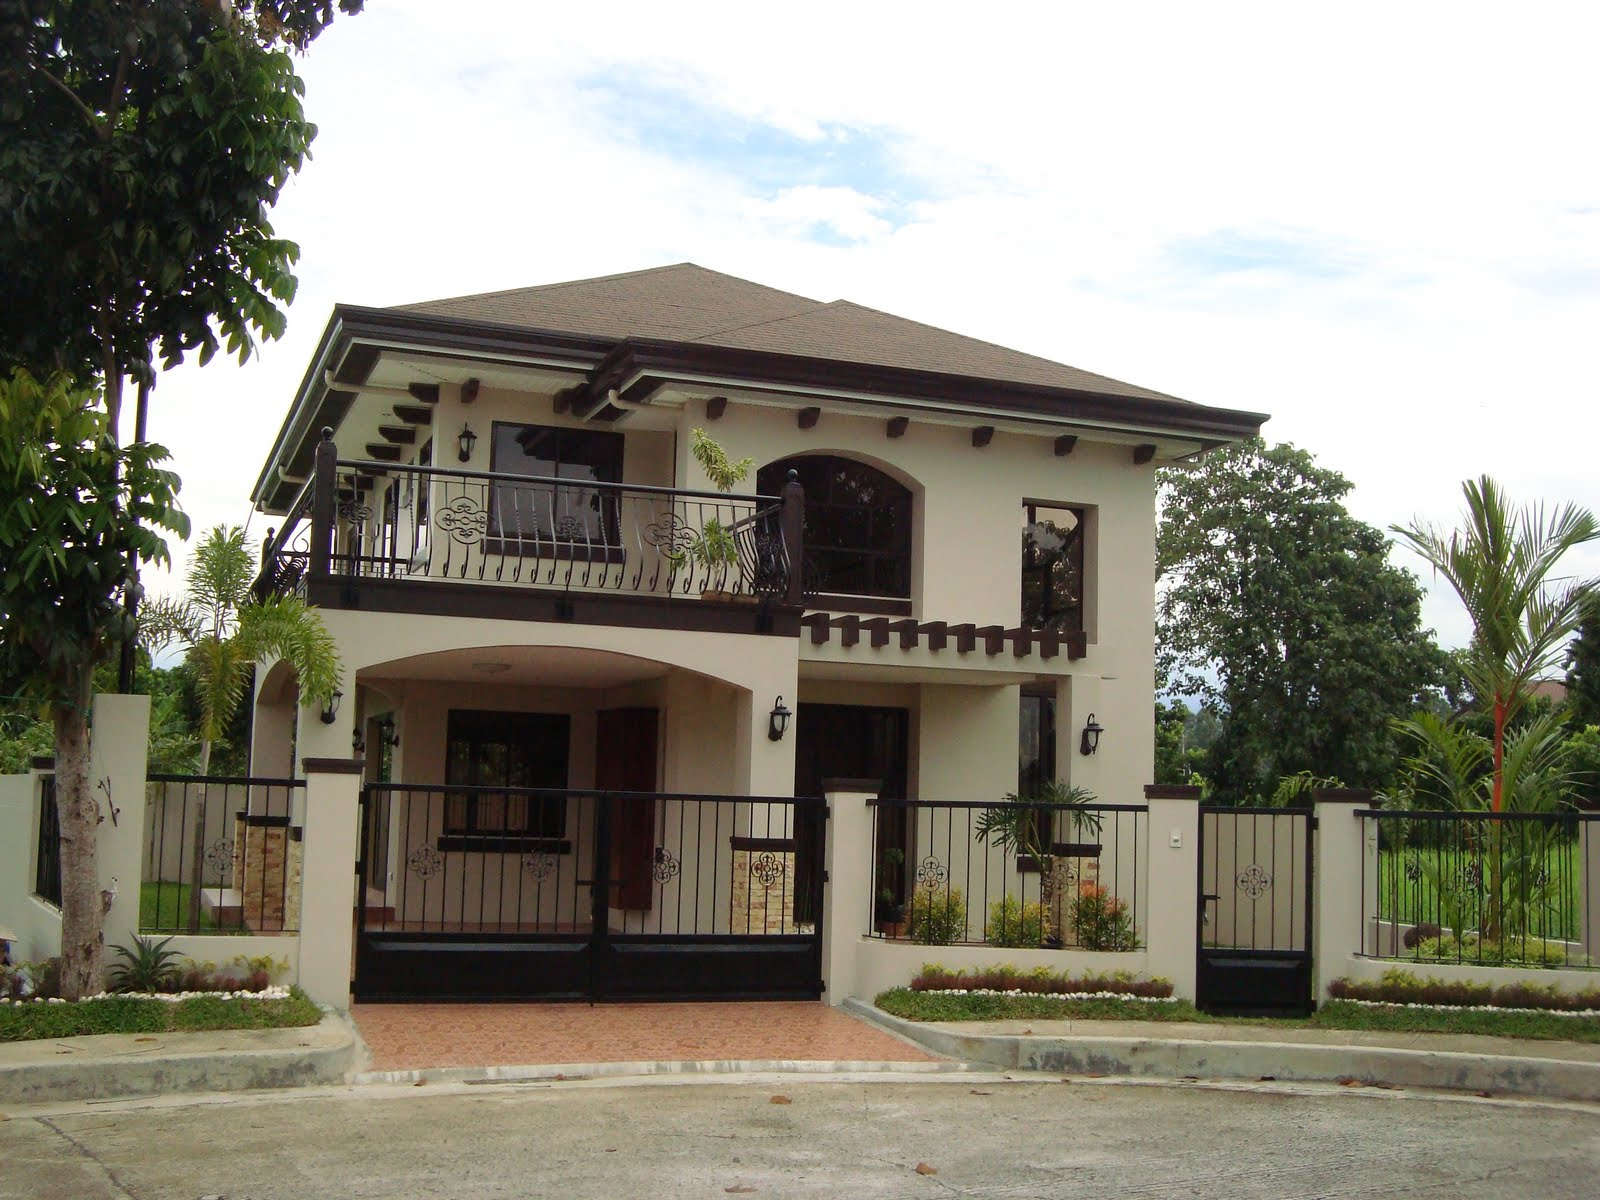 Modern contemporary house designs philippines iloilo simple 2 storey - House Designs In The Philippines In Iloilo By Erecre Group Realty